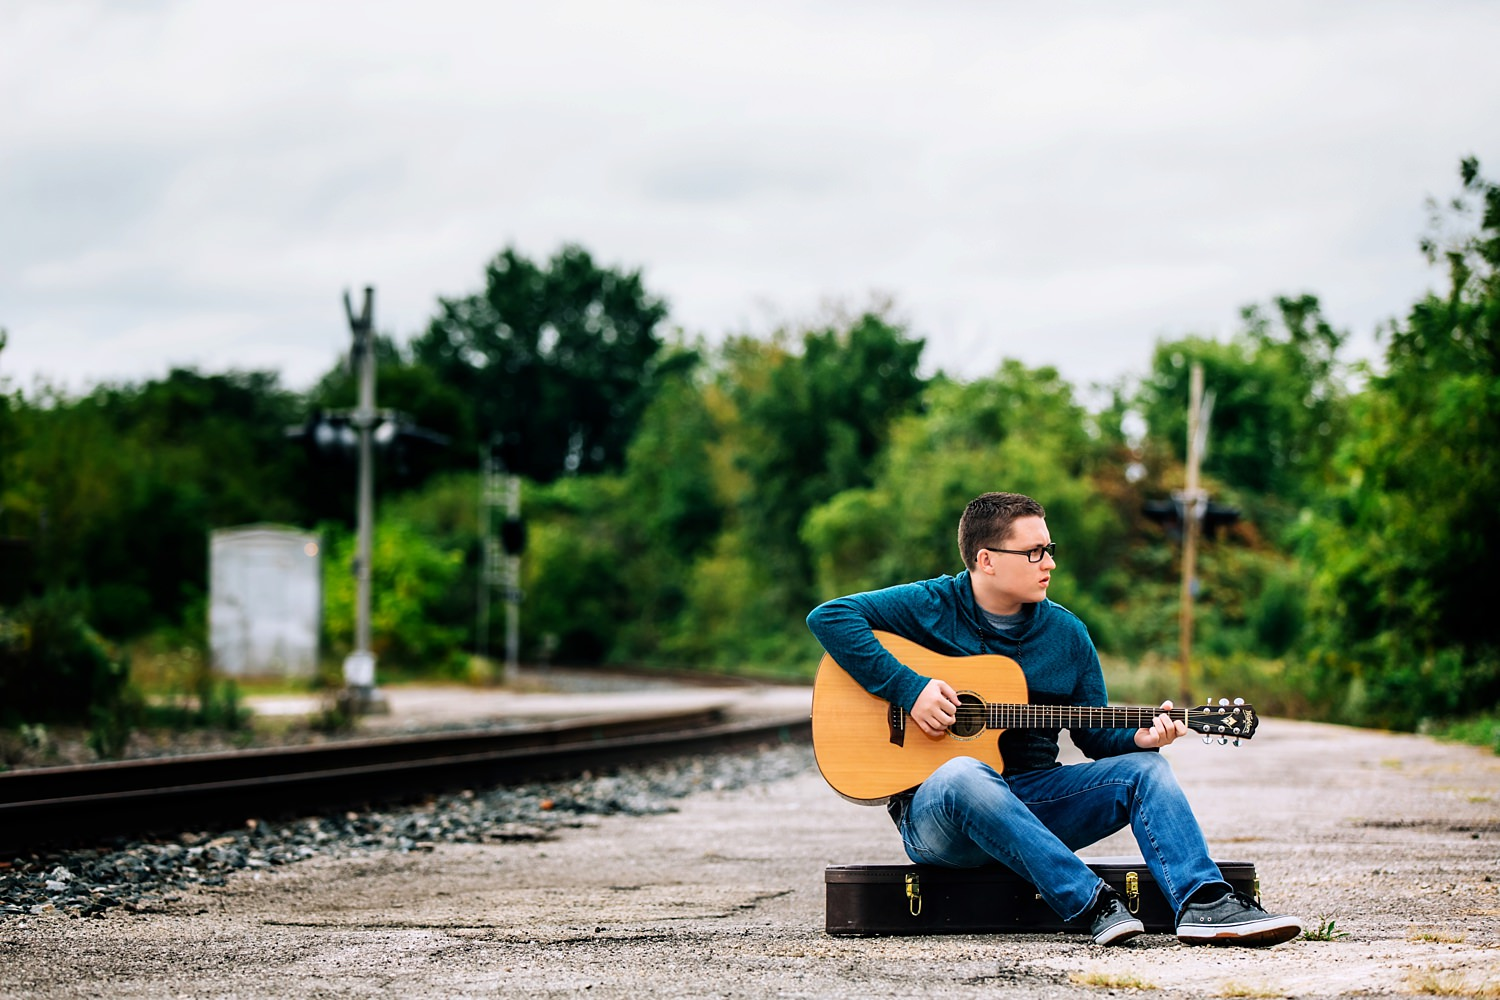 guy posing with guitar near train tracks in delaware ohio